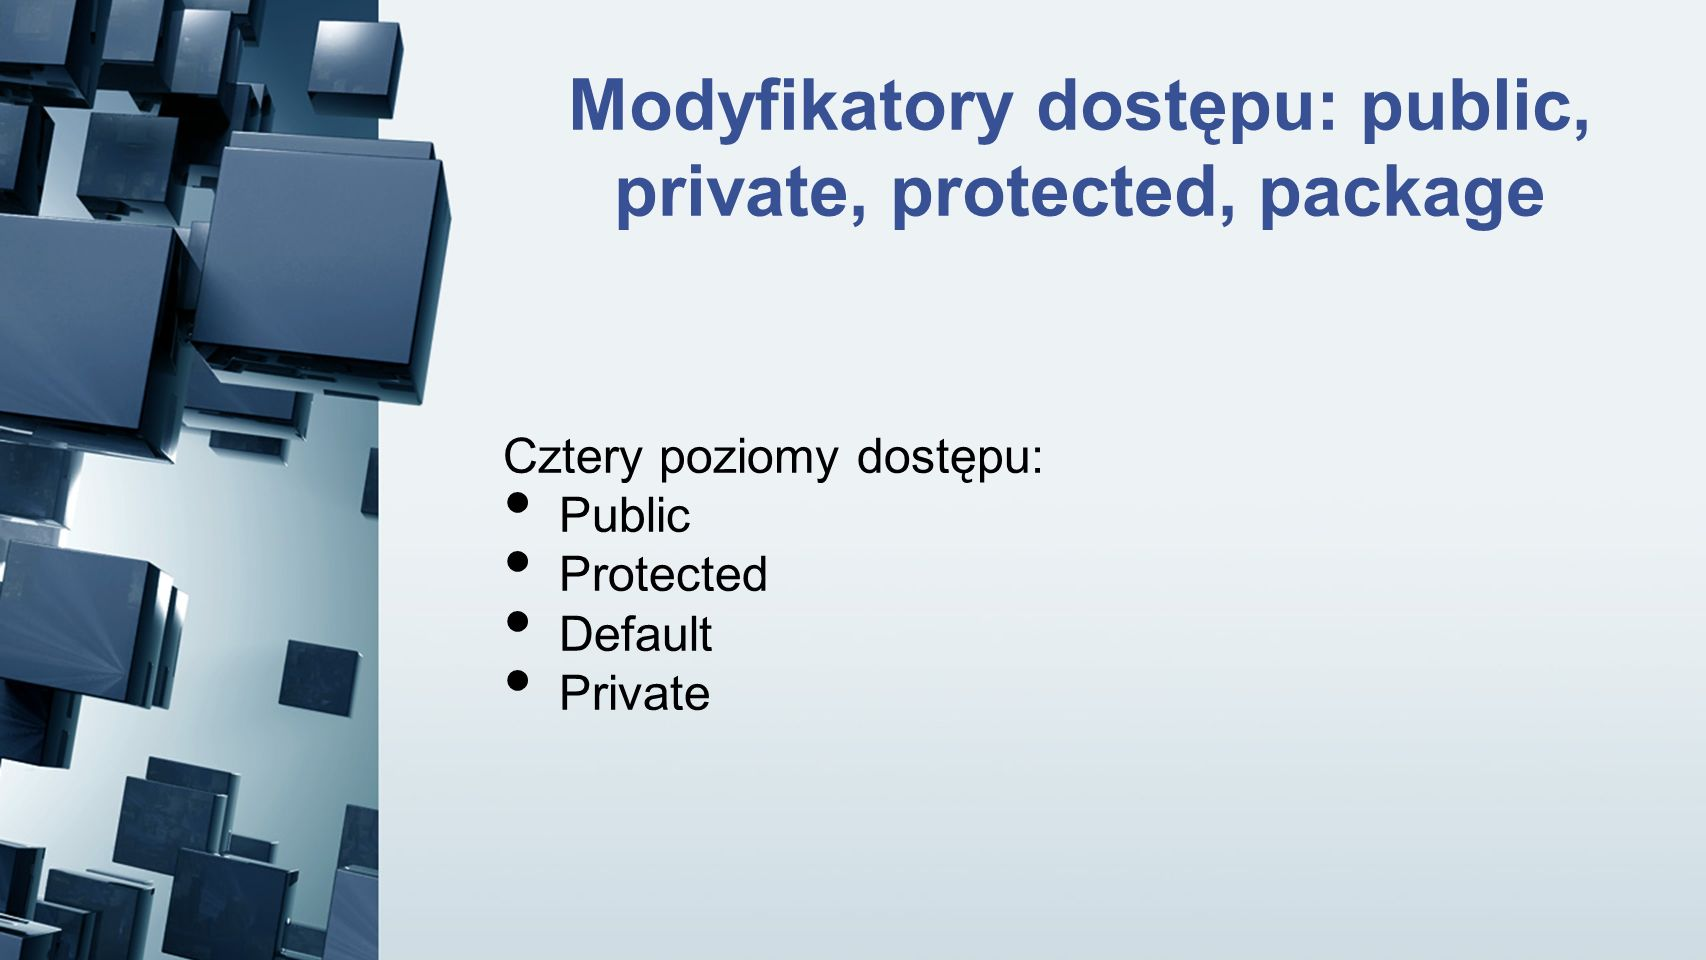 Modyfikatory dostępu: public, private, protected, package